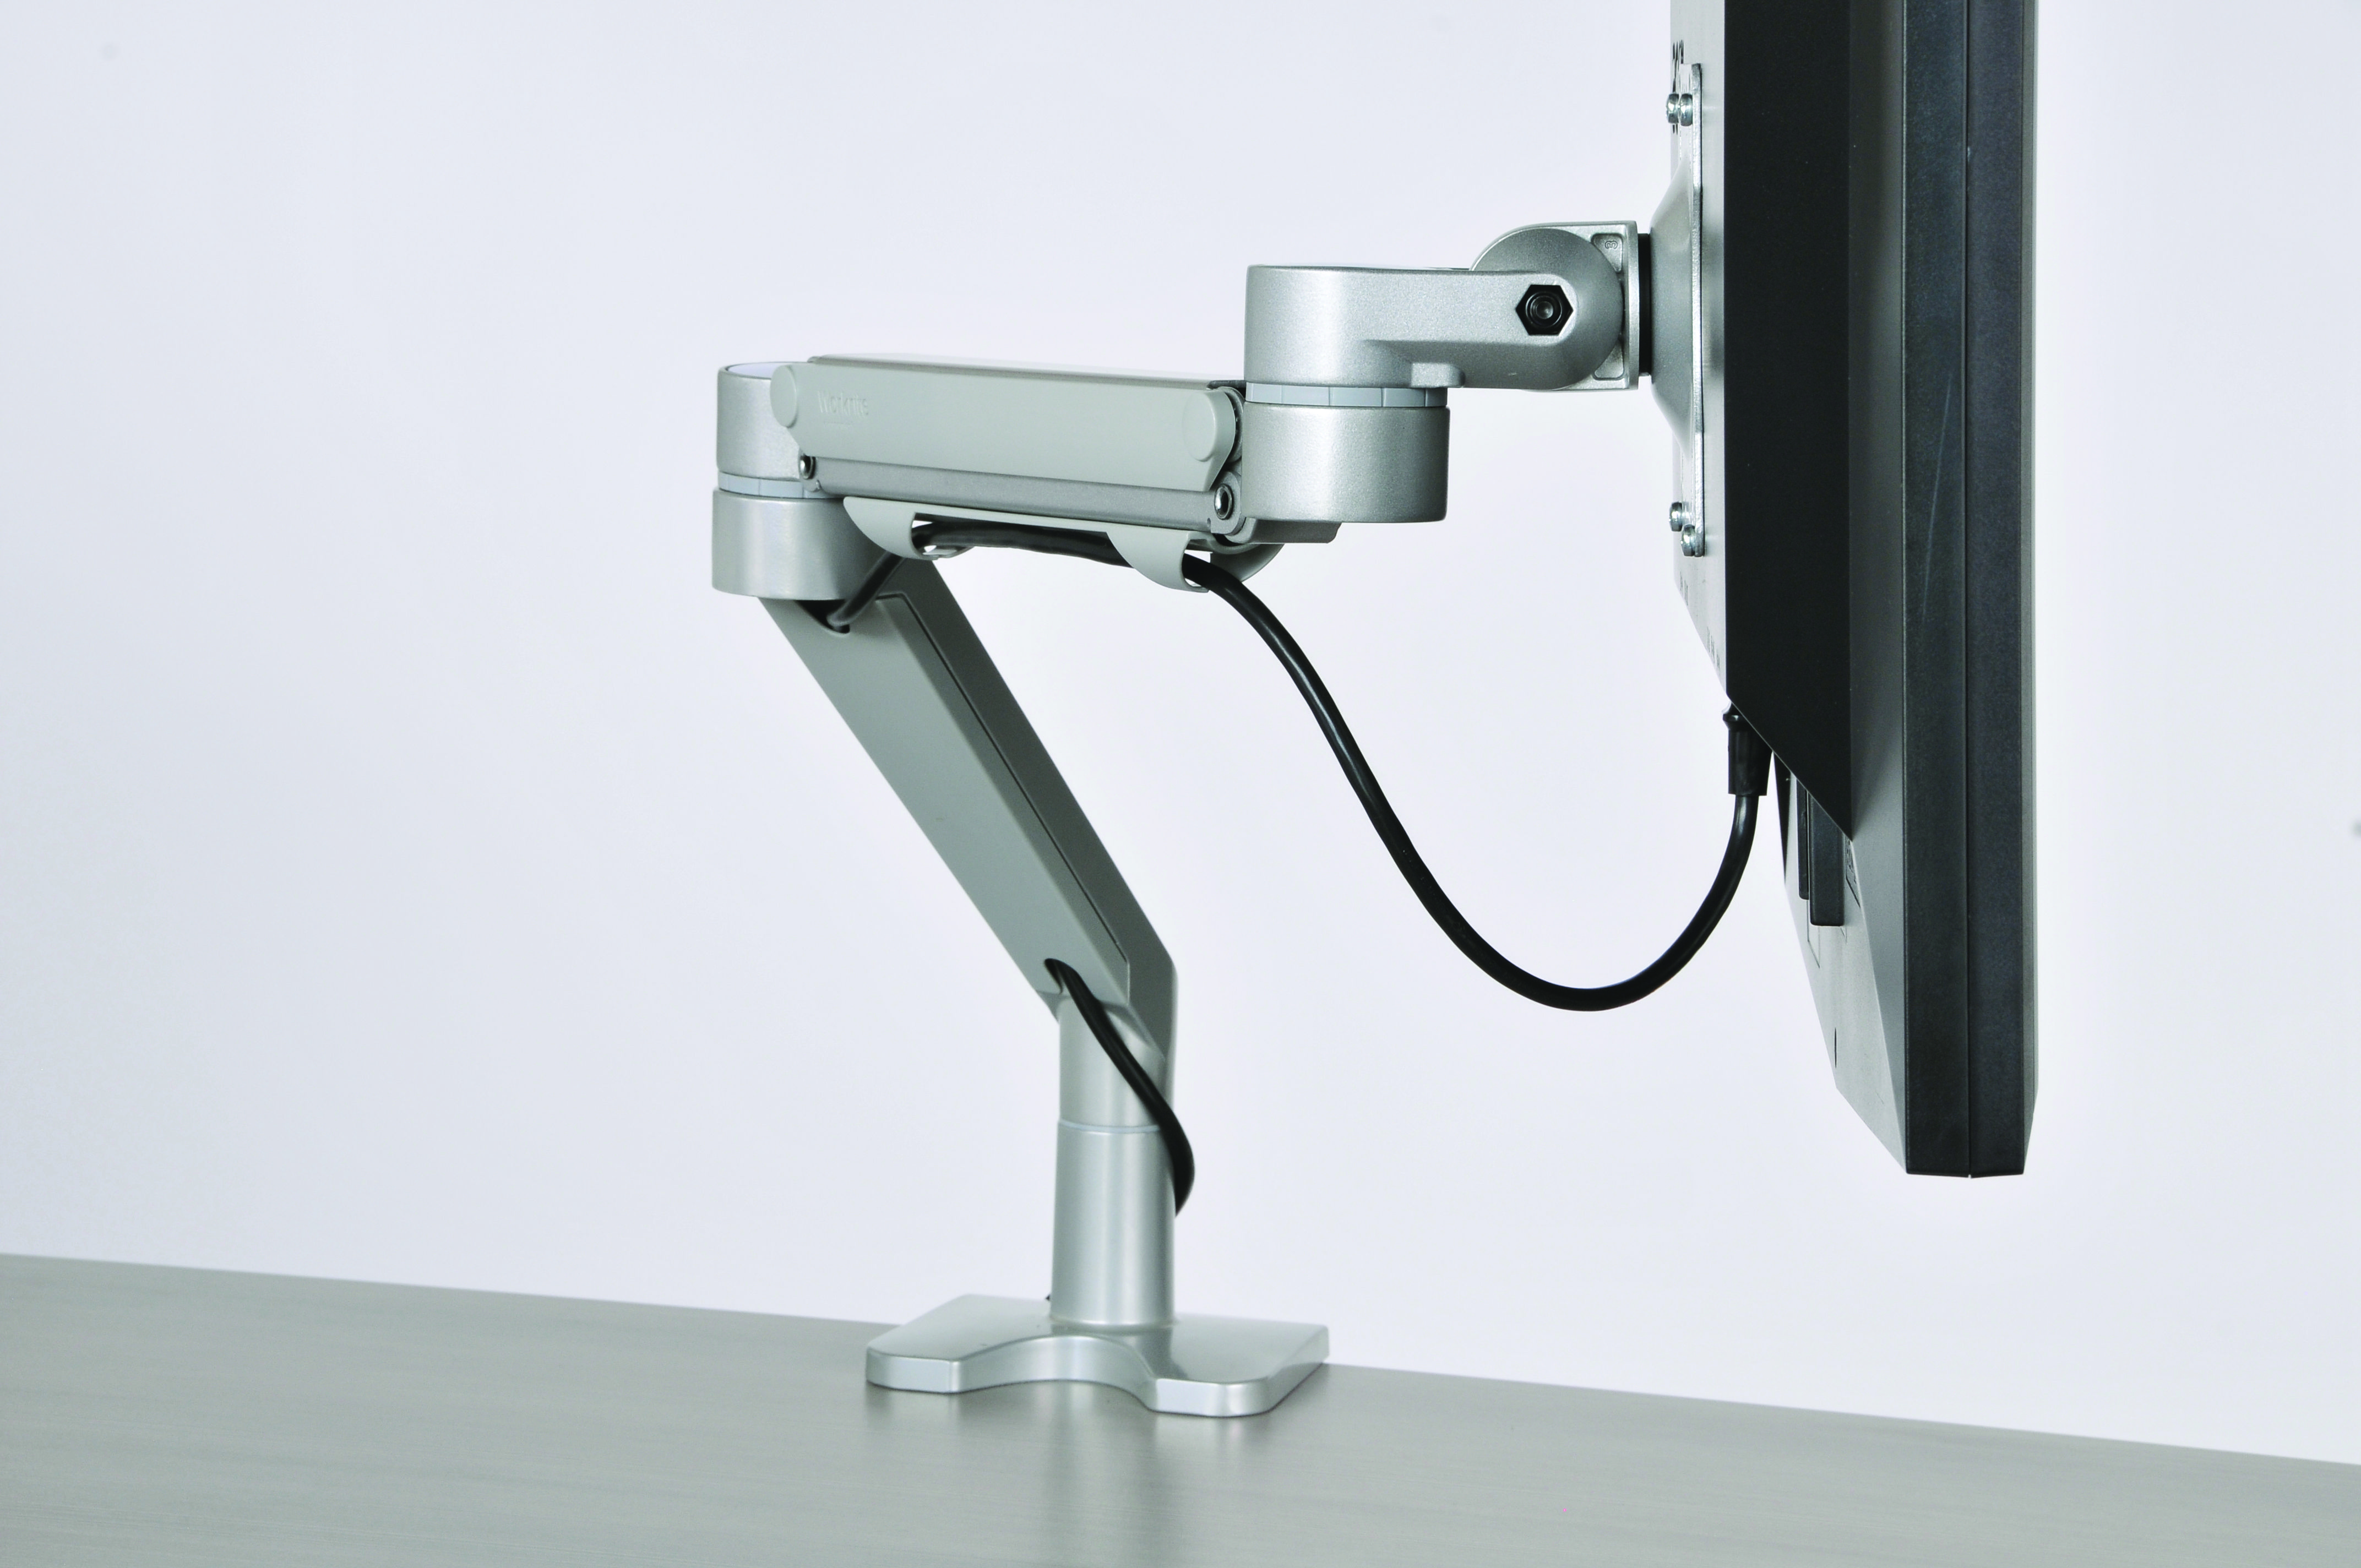 willow single monitor arm adjustable monitor arm monitor arms rh pinterest es